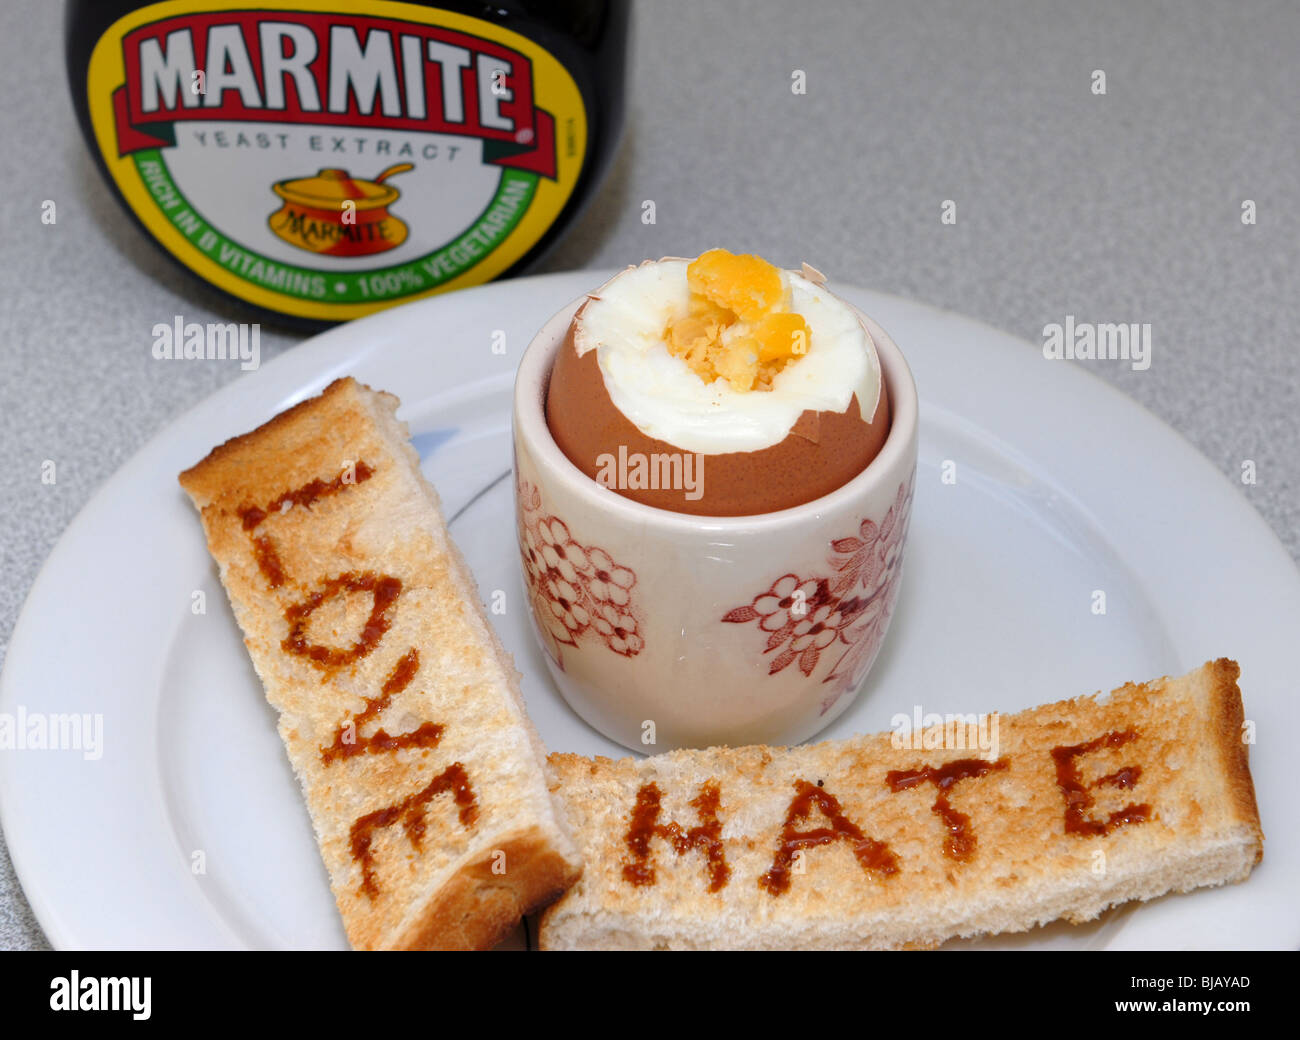 Generic image of Marmite with Love and Hate written on toast.  A Unilever Brand guaranteed to cause arguments. Stock Photo